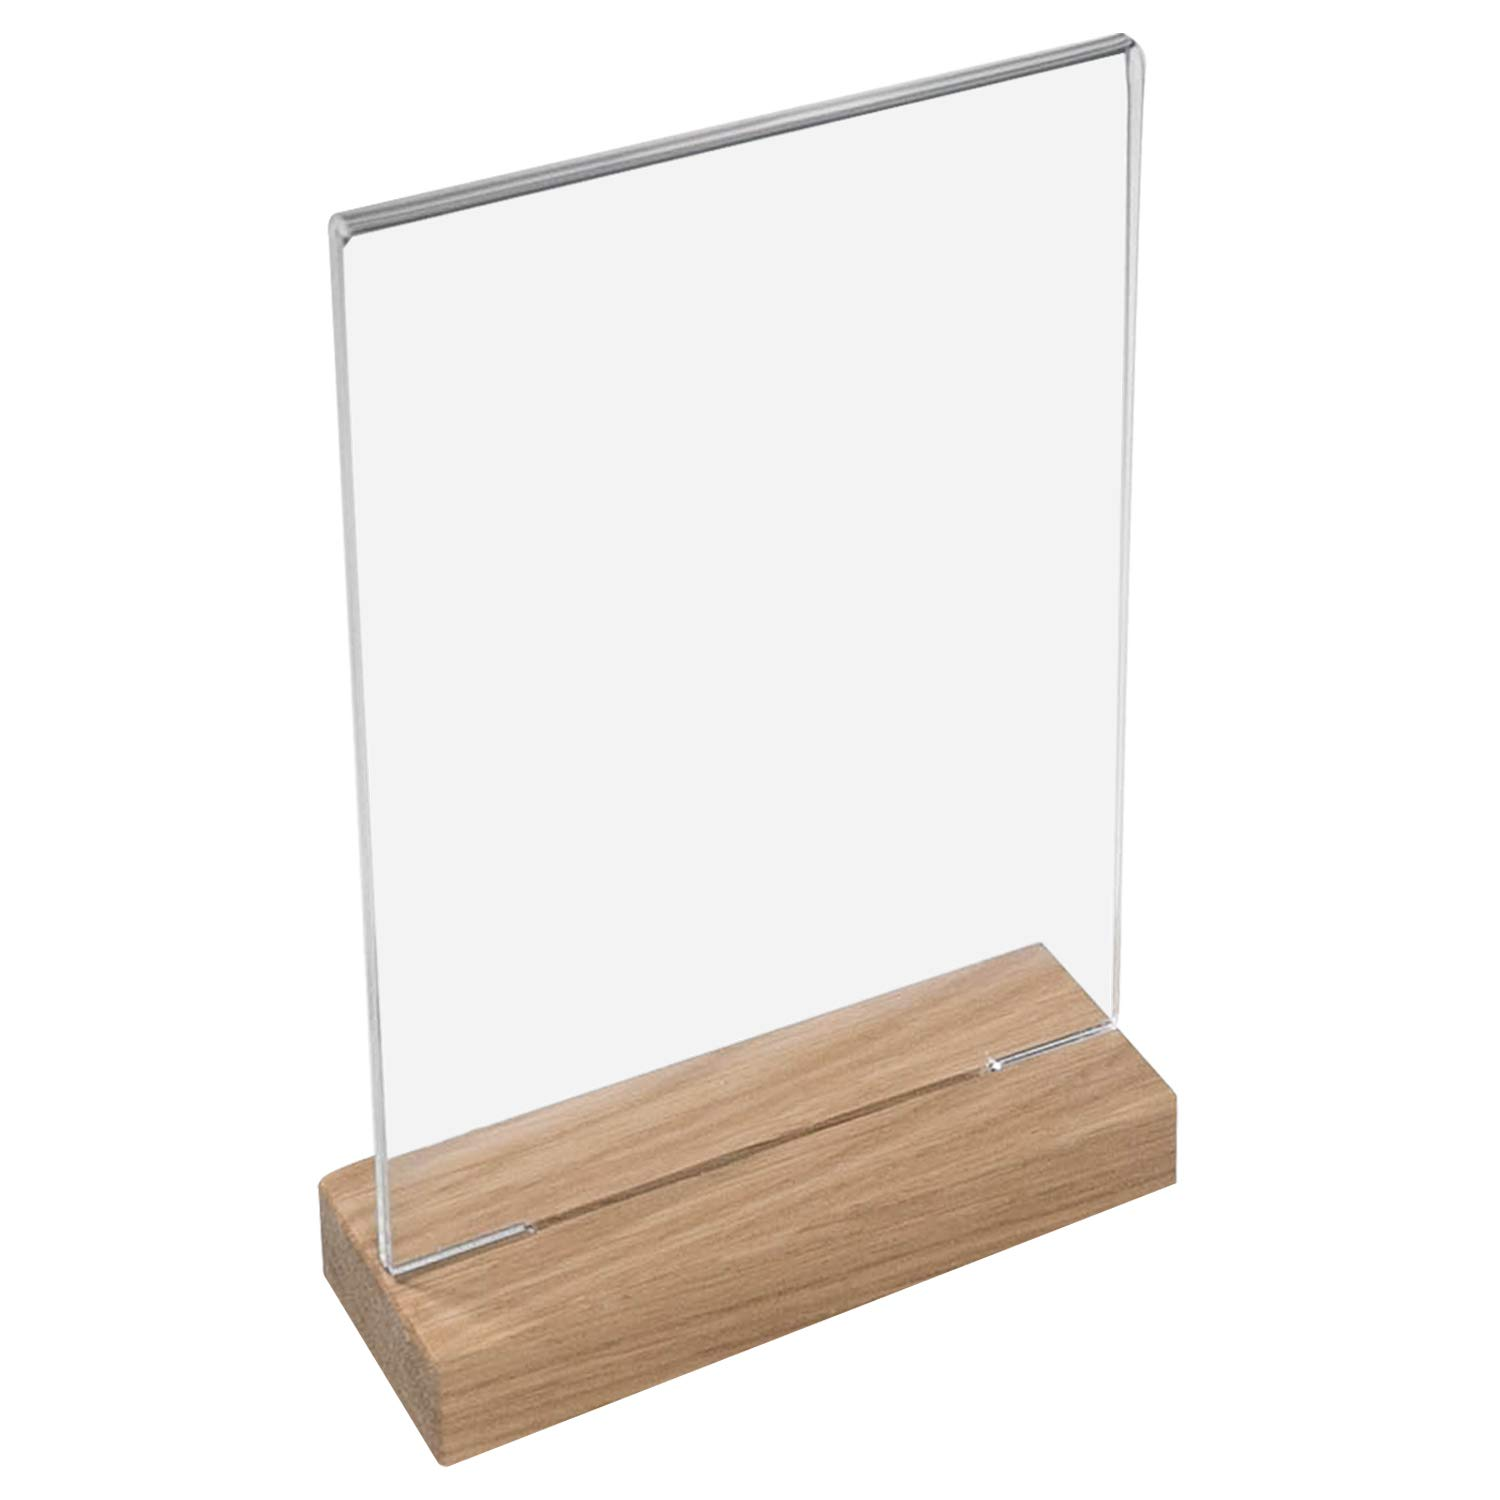 HMF 4694900 Table Stand Wooden Base Acrylic Menu Card Holder Choice of Sizes